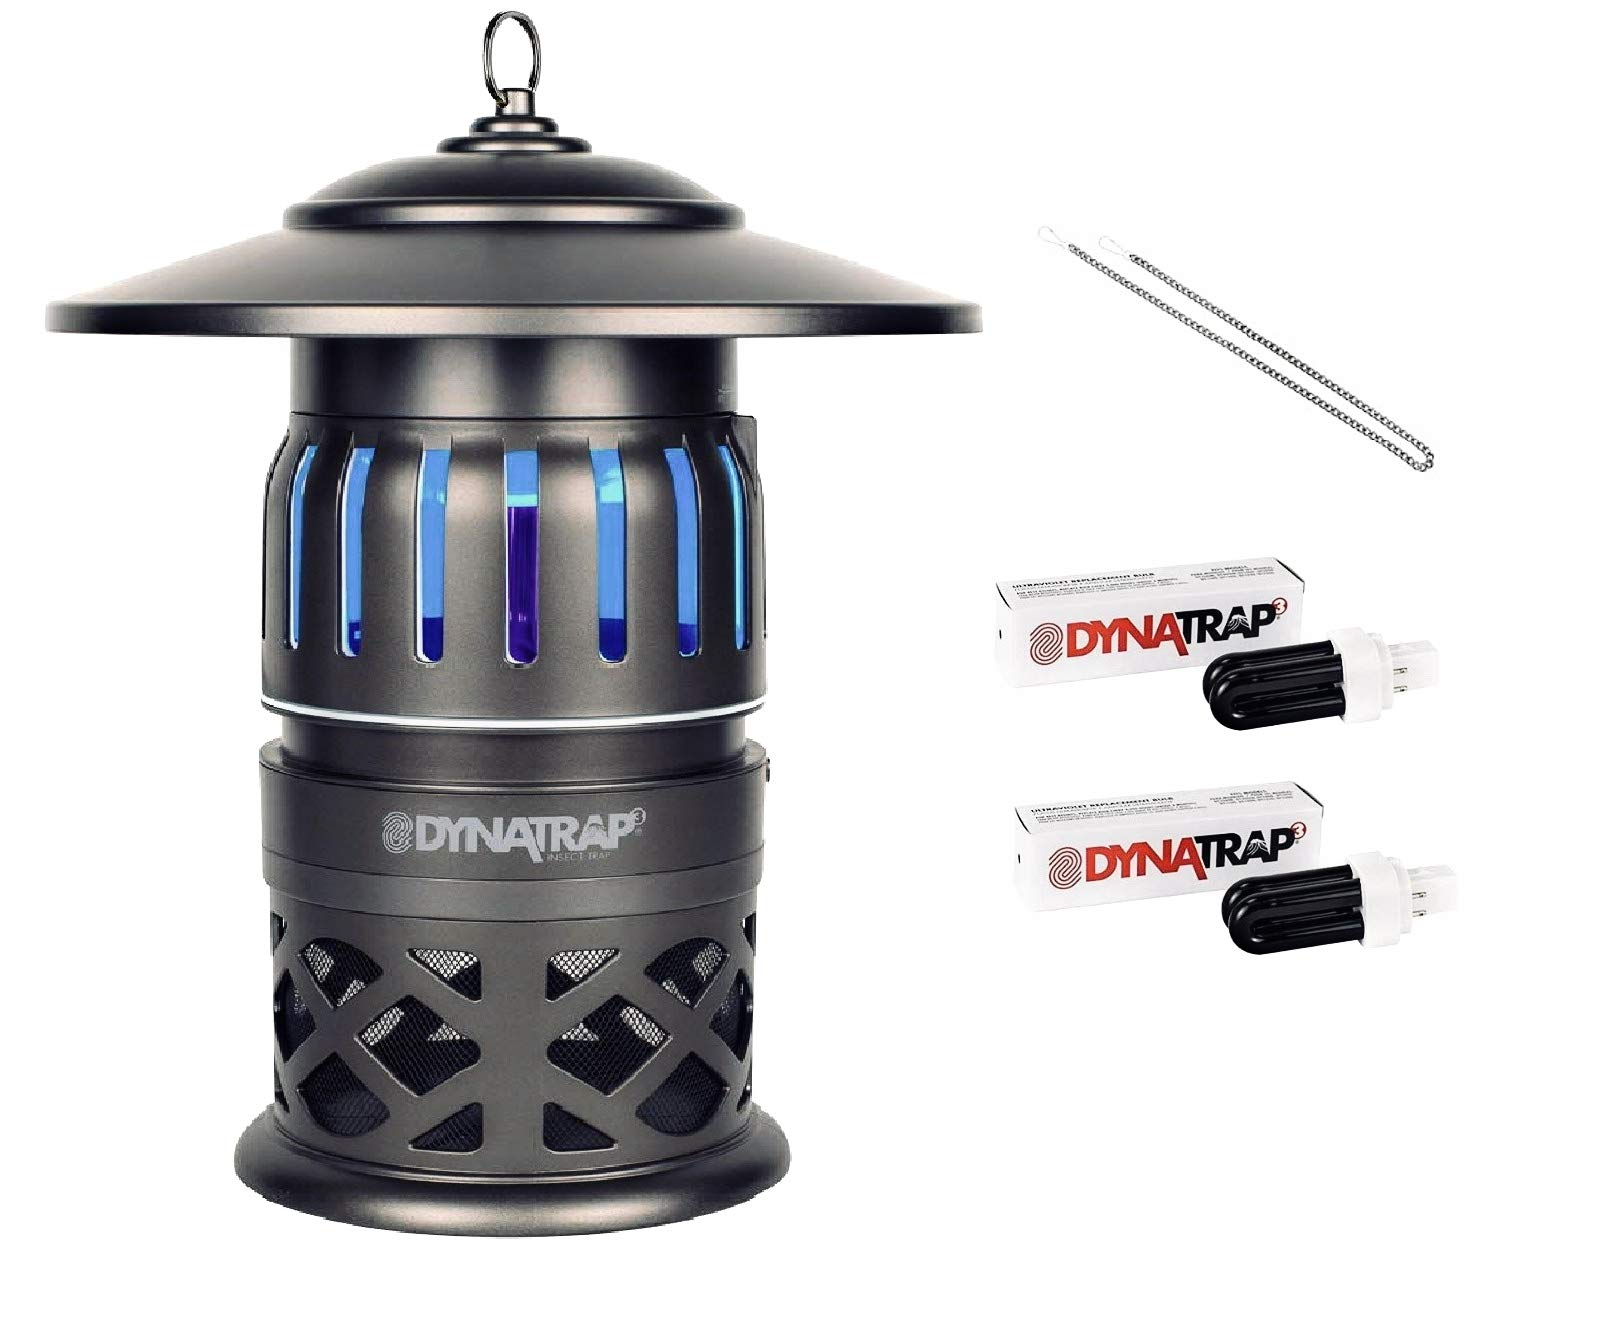 DynaTrap 1/2 Acre Insect and Mosquito Trap - Includes Two Bonus UV Bulbs and Hanging Chain (1/2 Acre w/Bonus Replacement UV Bulbs) by DynaTrap